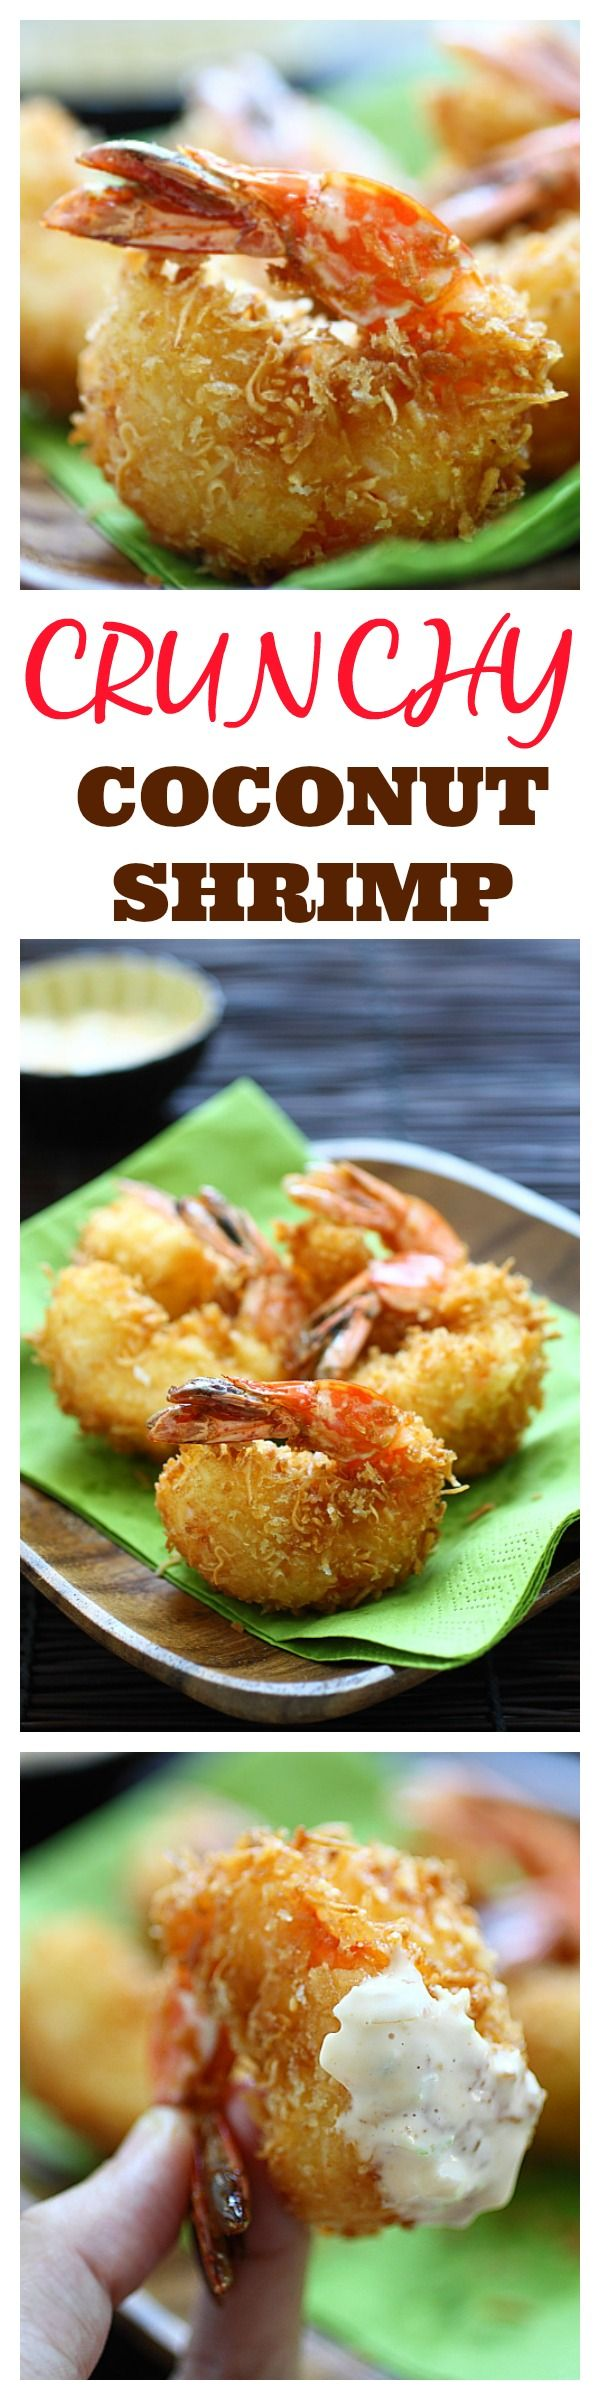 Crunchy Coconut Shrimp ~ The best coconut shrimp recipe ever with two ...